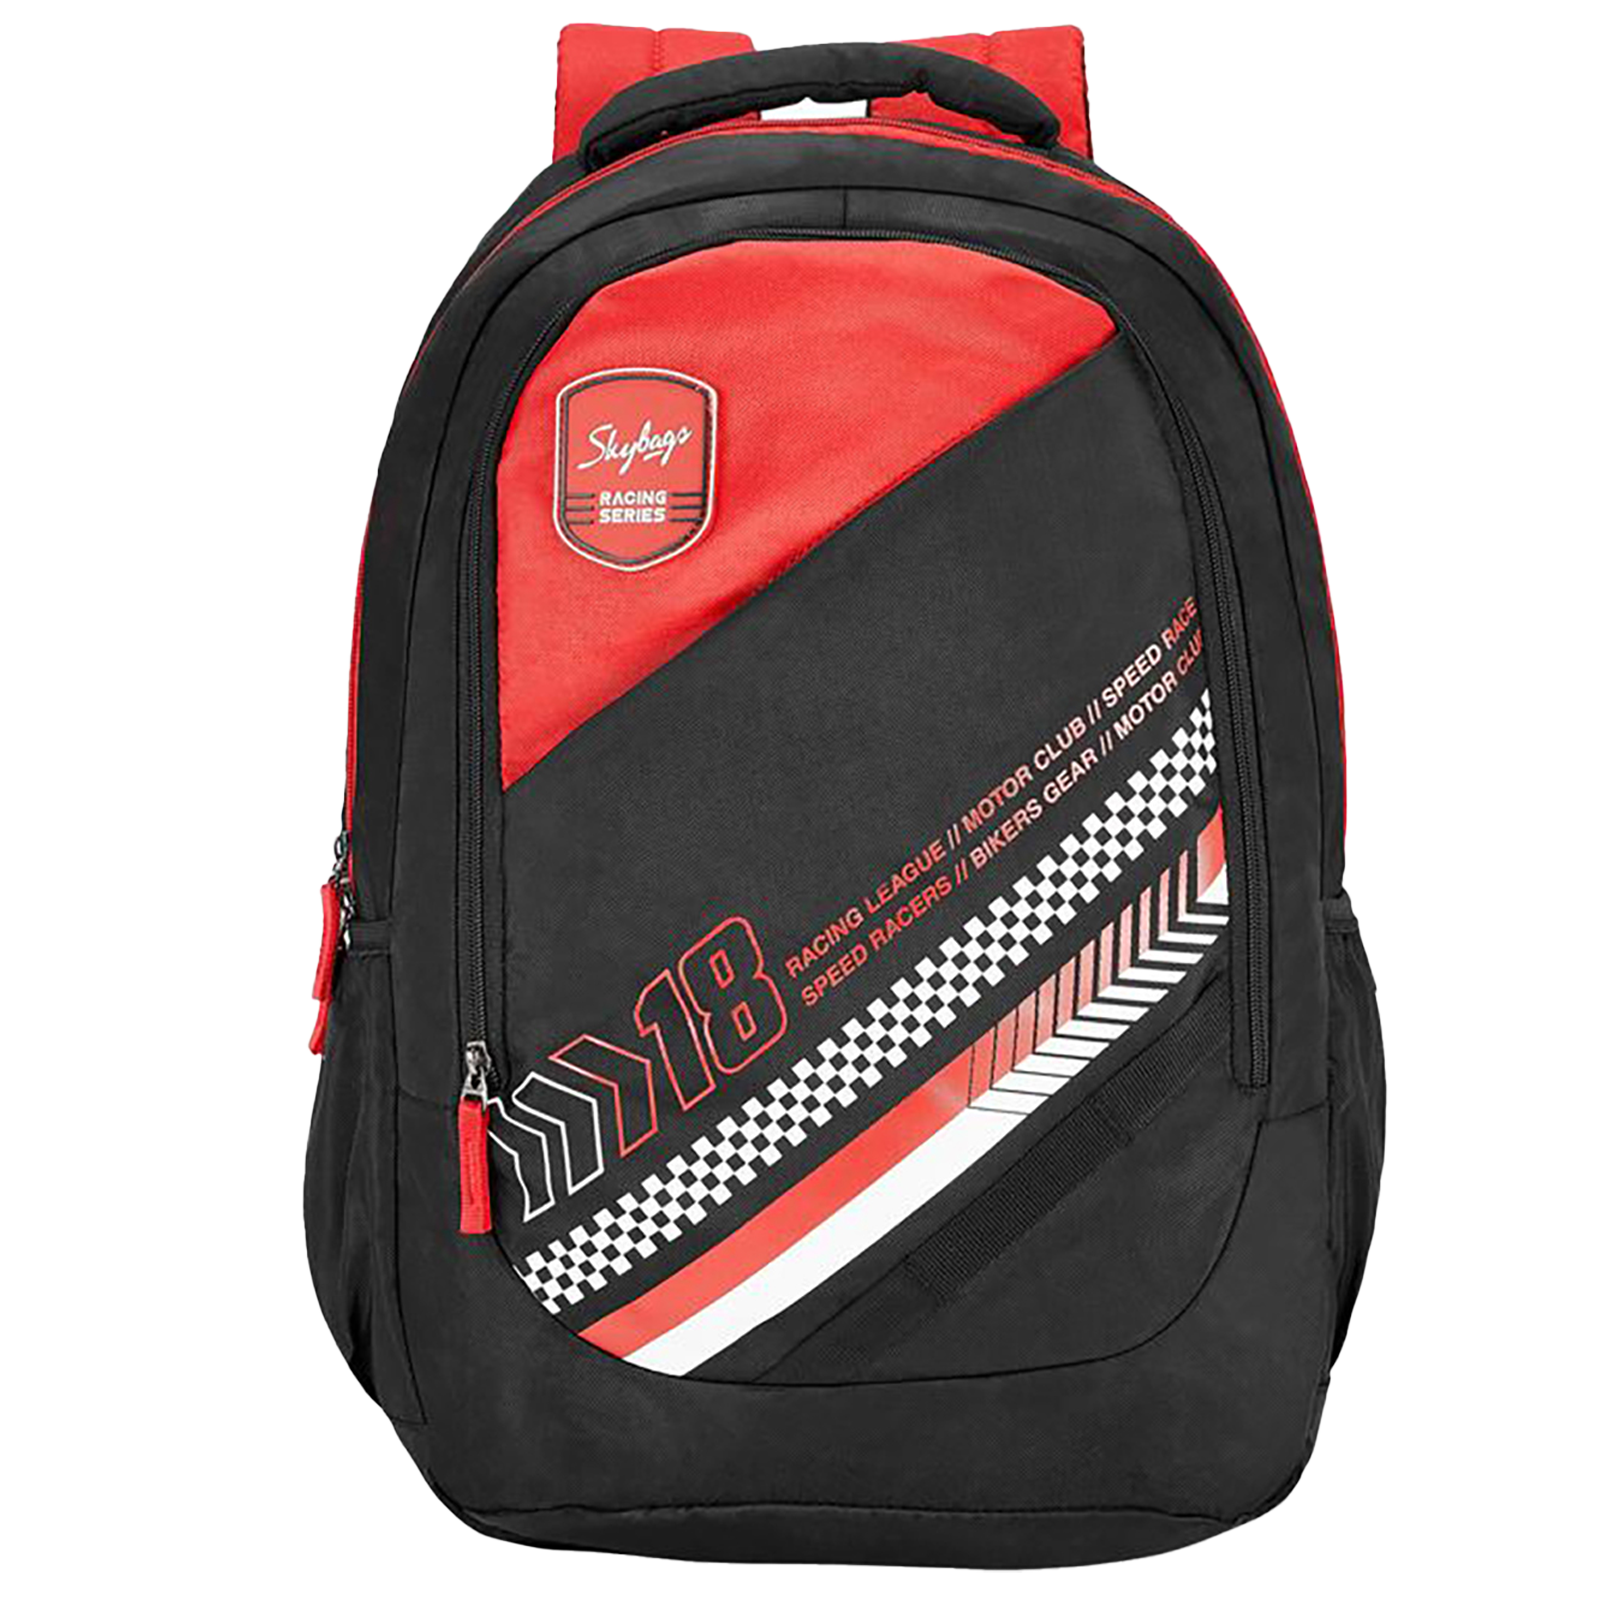 Sky Bags BFF 2 28 Litres Gucci Fabric Backpack (Built to Last Straps, BPBFF2BLK, Black)_1